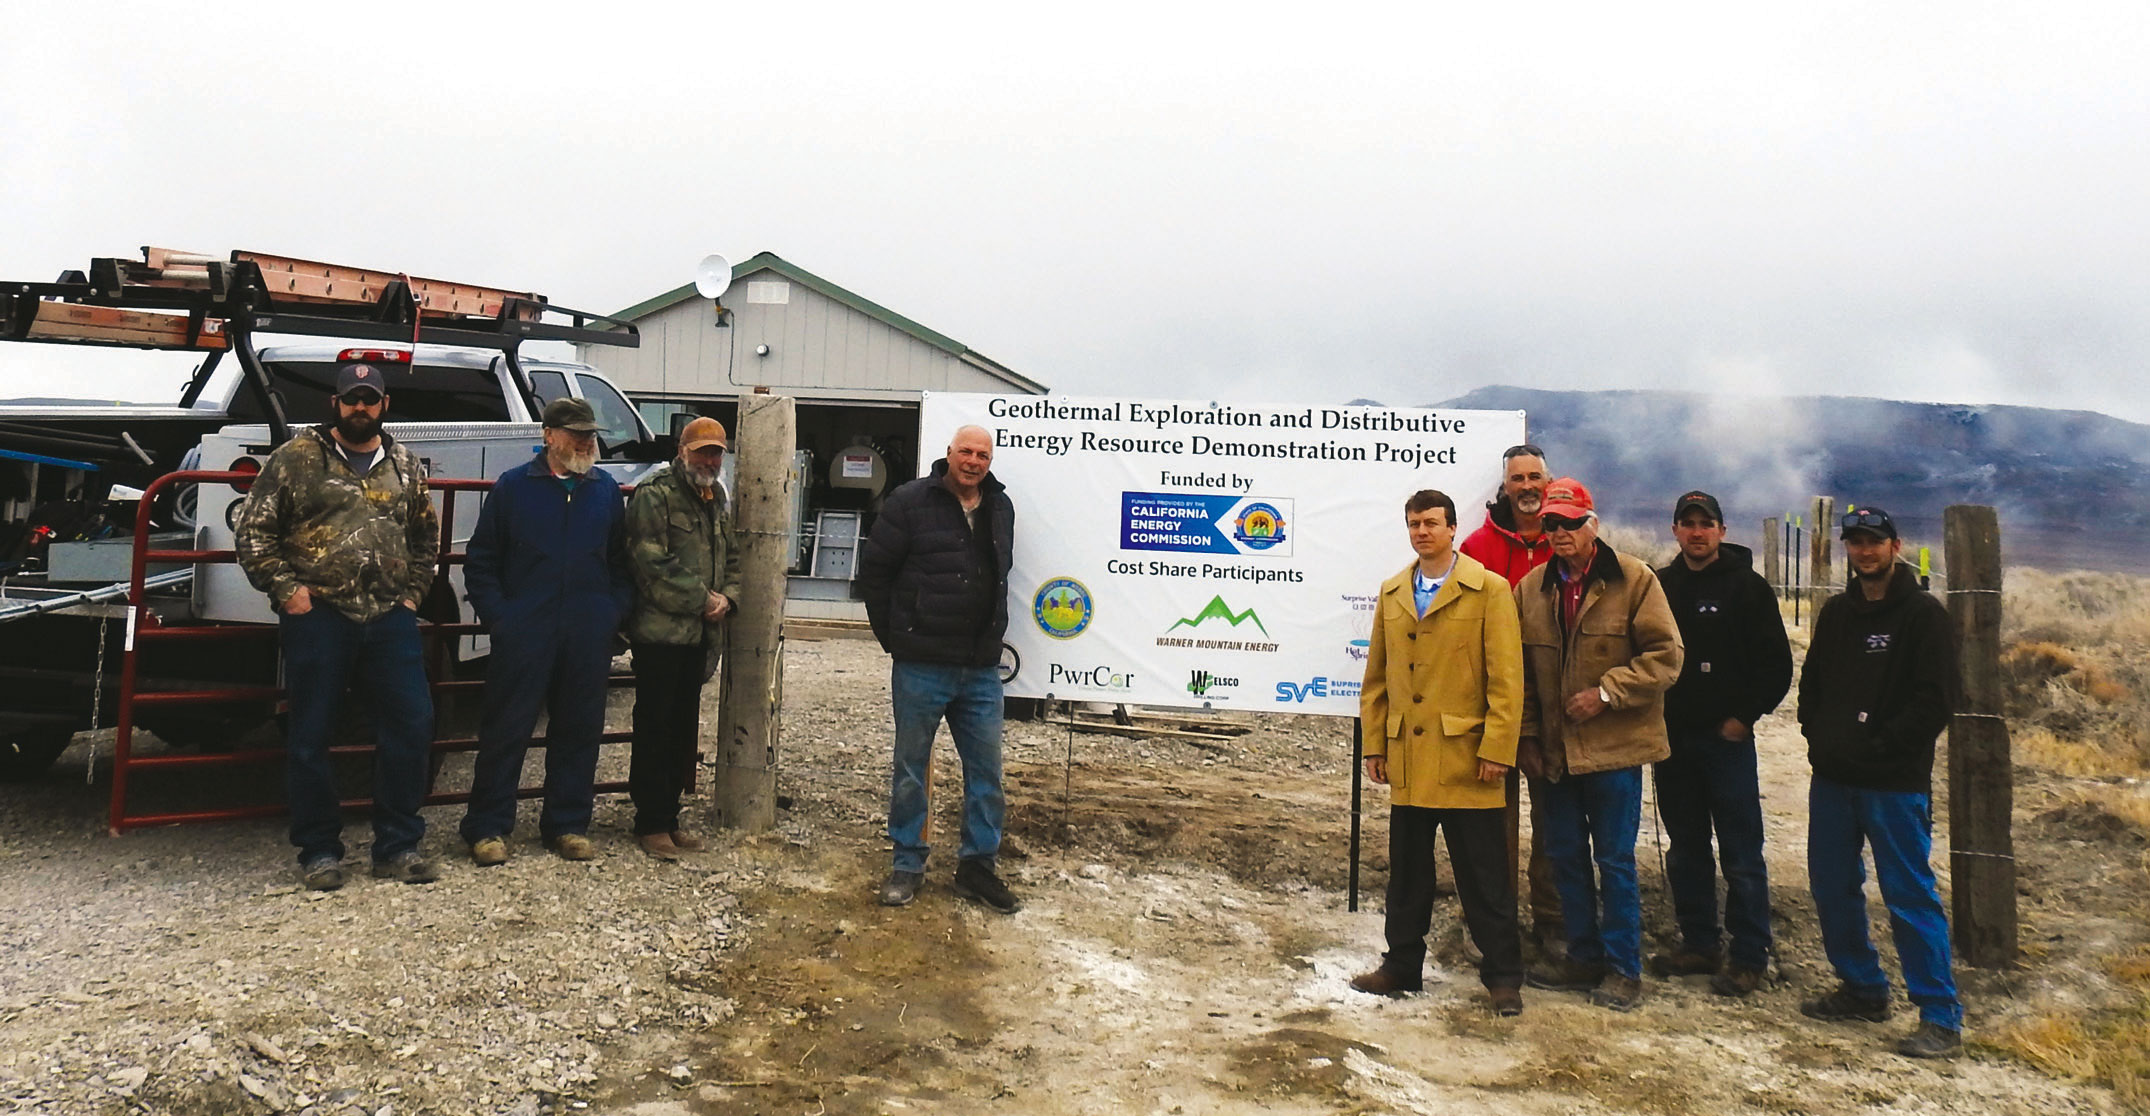 TAKING PART in the initial startup for the new geothermal equipment were, left to right: John Minto, SV Electric distribution engineer; Sid Erwin, electrical engineer; Dr. Roy Mink, Warner Mountain Energy; Peter Fazio owner of PwrCor; Chester Robertson, Modoc County CEO; Curt Rose, WME; Ken Rose, owner of SV Hot Springs Resort; Shawn Sherer with McCombs Electric; and Dane McCombs, McCombs Electric. Modoc County Record